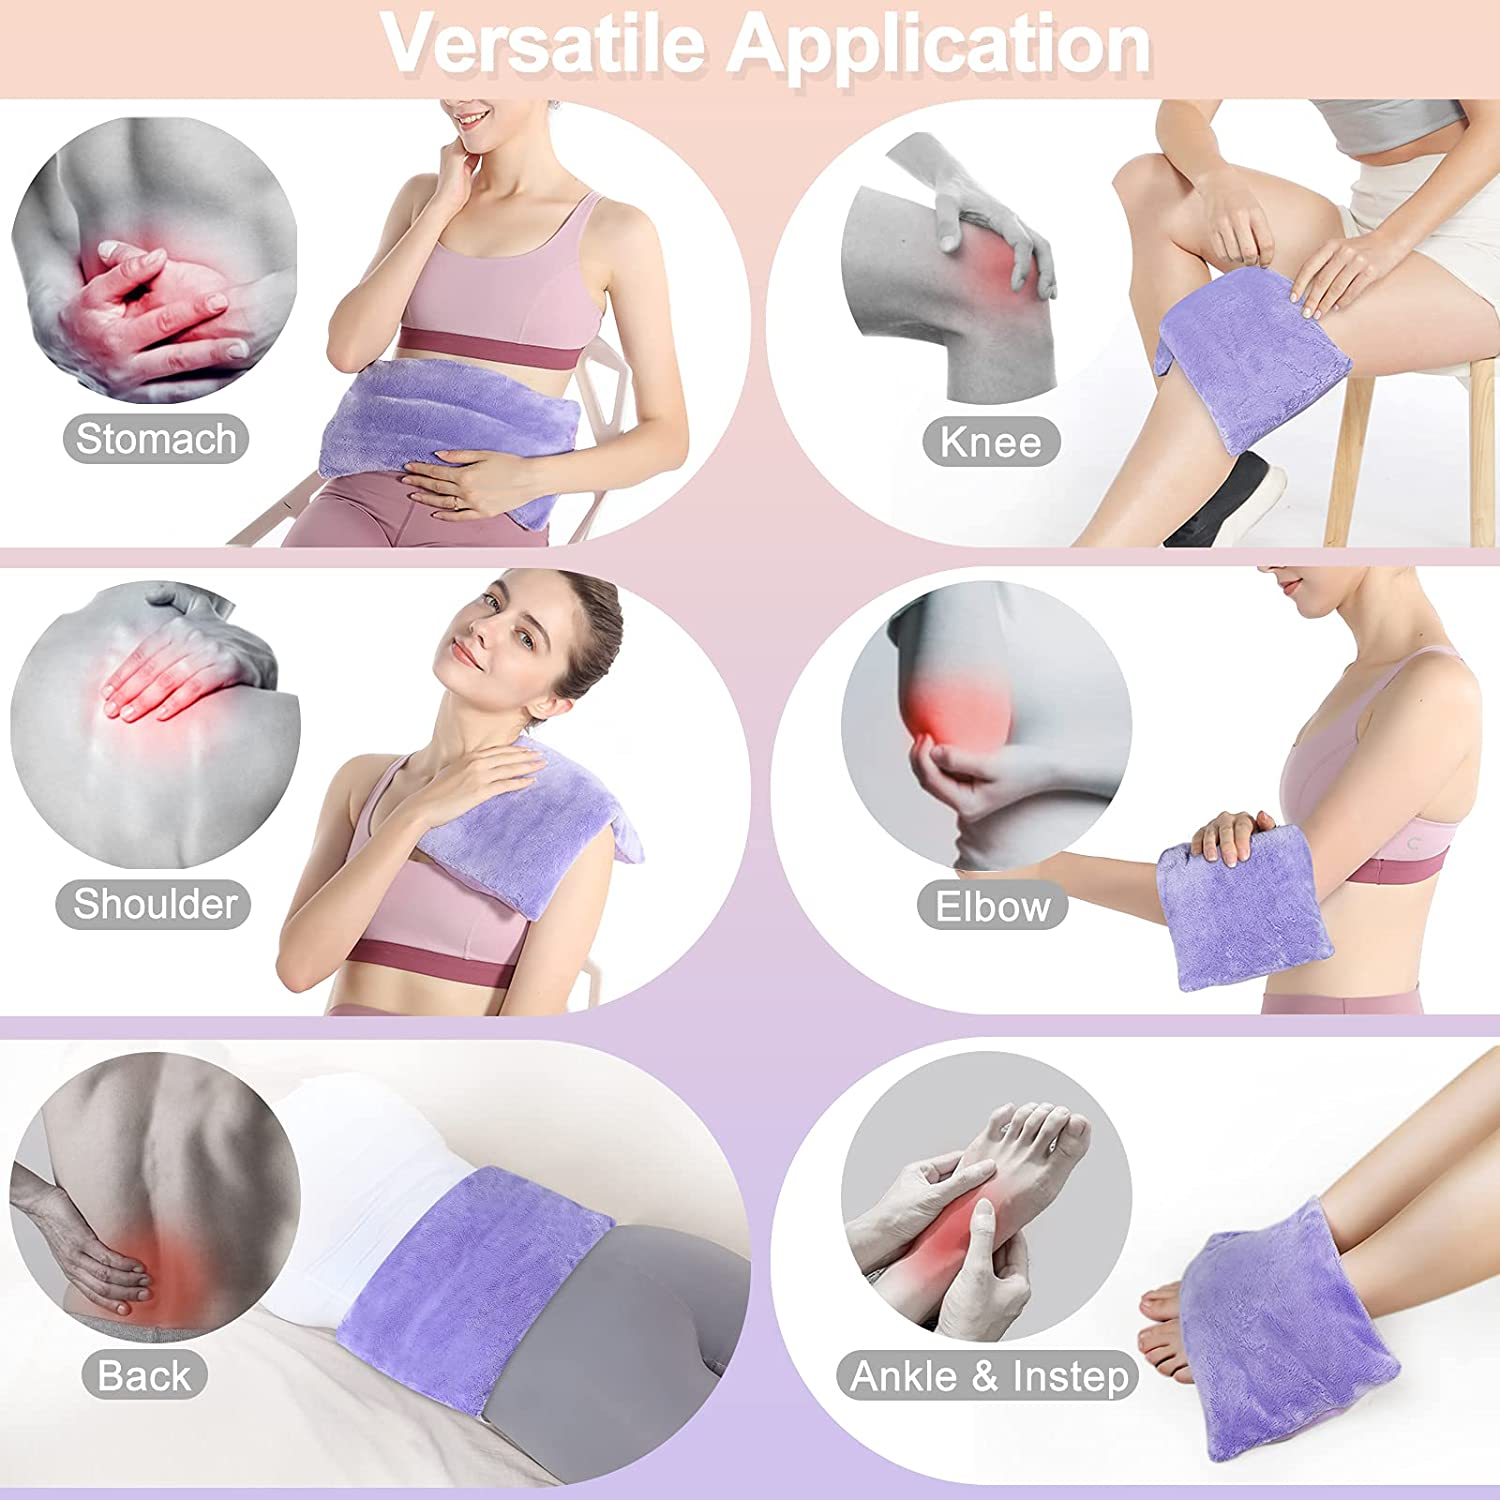 SuzziPad Microwave Heating Pad, Multipurpose Heating Pad for Neck, Shoulder, Back, Knee, Period Cramps, Joint Pain and Muscle Ache,Moist Heat Pack for Pain Relief, Heat Compress Wrap (Purple